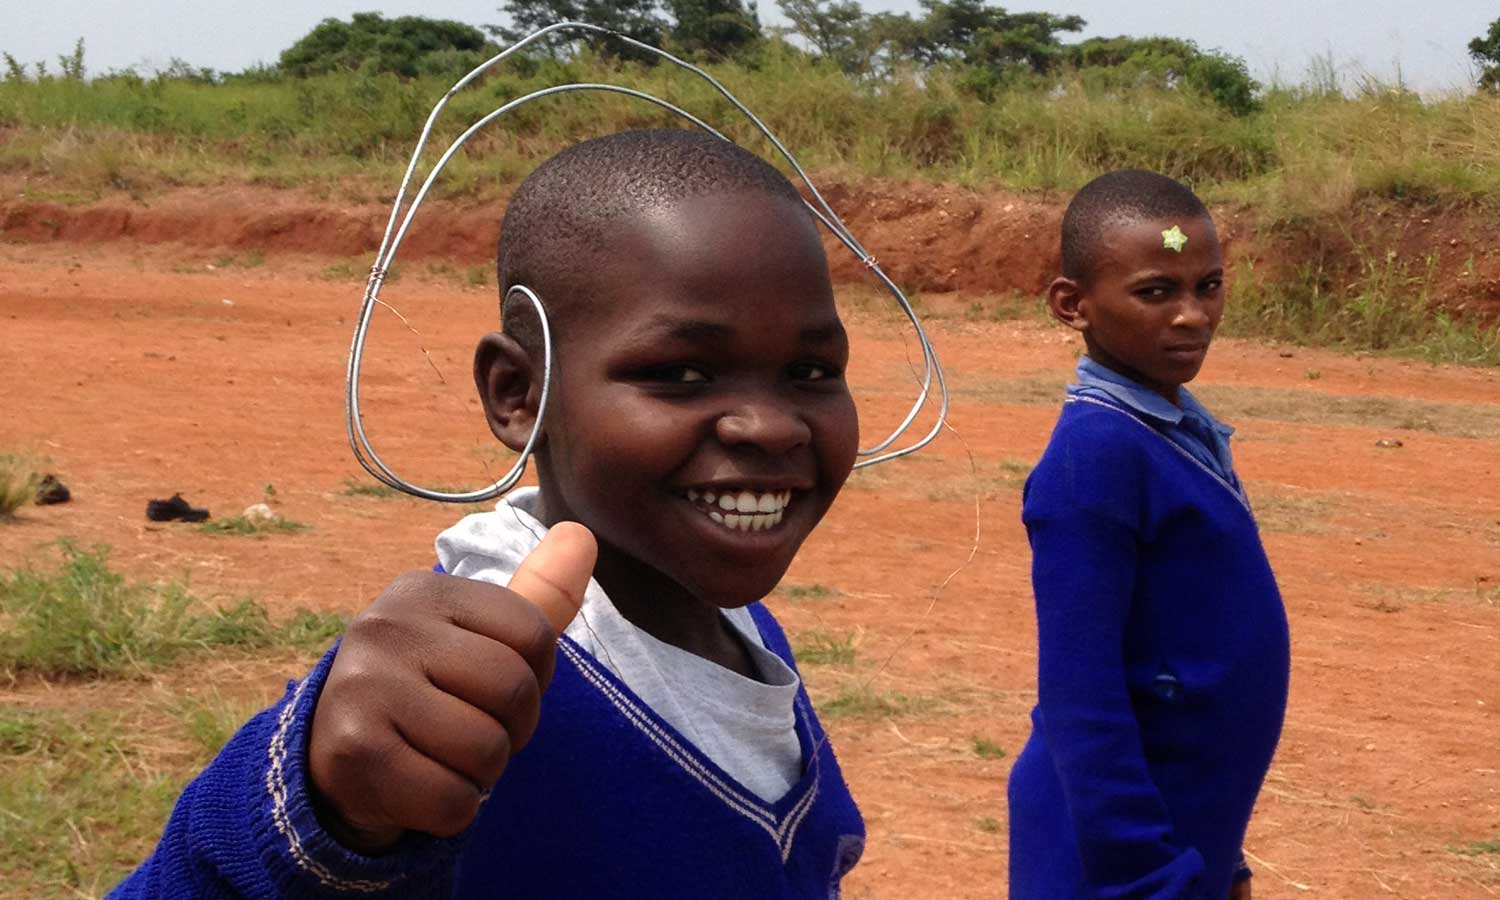 Alex Smith, 10, plays in Uganda as a child during school. Smith moved to the U.S. in 2011.